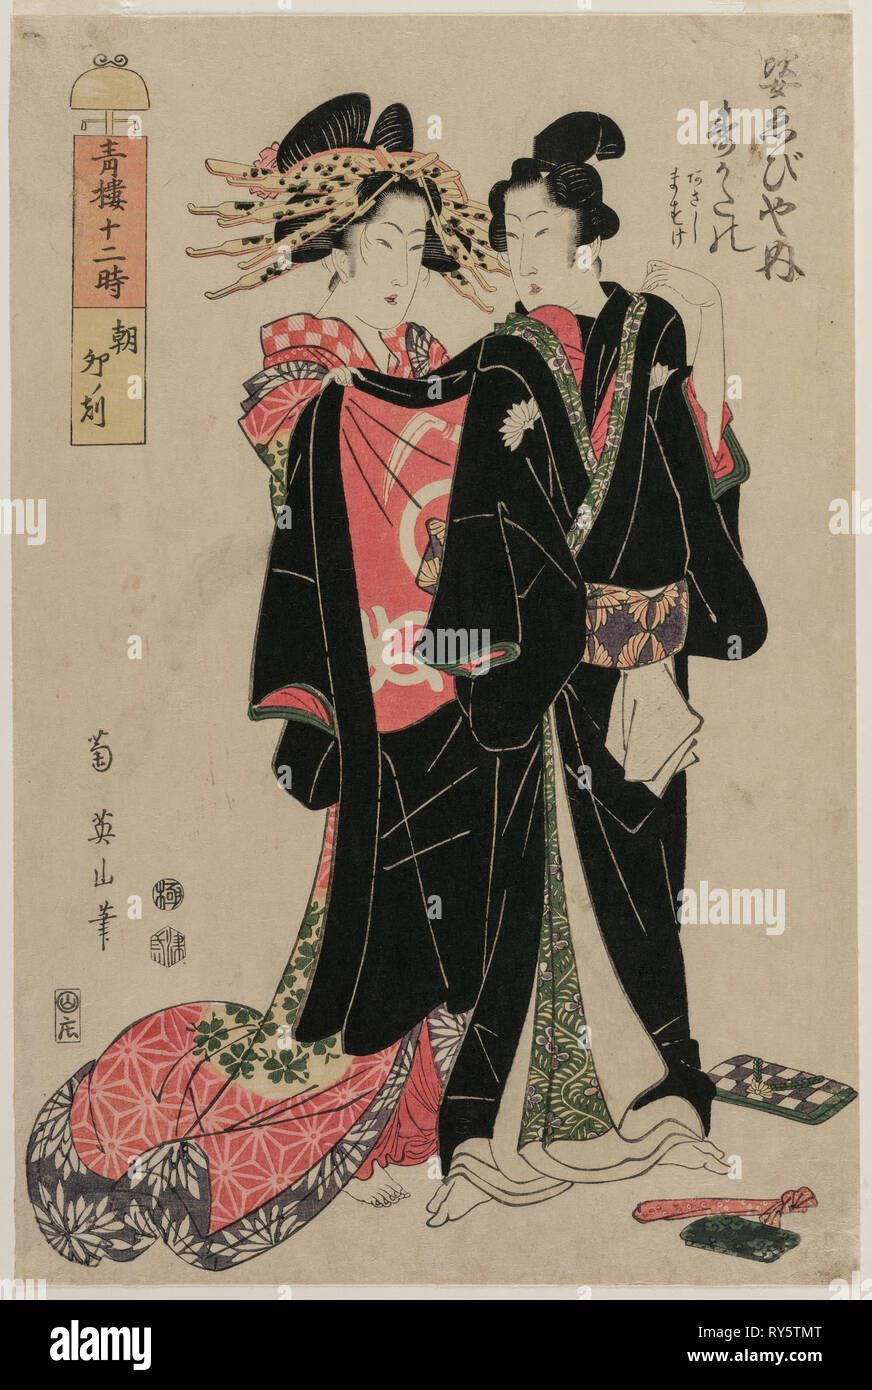 Sugatano of Sugata Ebisuya in the Morning, Hour of the Rabbit, from the series The Twelve Hours in the Pleasure Quarters, 1812. Kikugawa Eizan (Japanese, 1787-1867). Color woodblock print; ink and color on paper; sheet: 37.8 x 25.3 cm (14 7/8 x 9 15/16 in - Stock Image